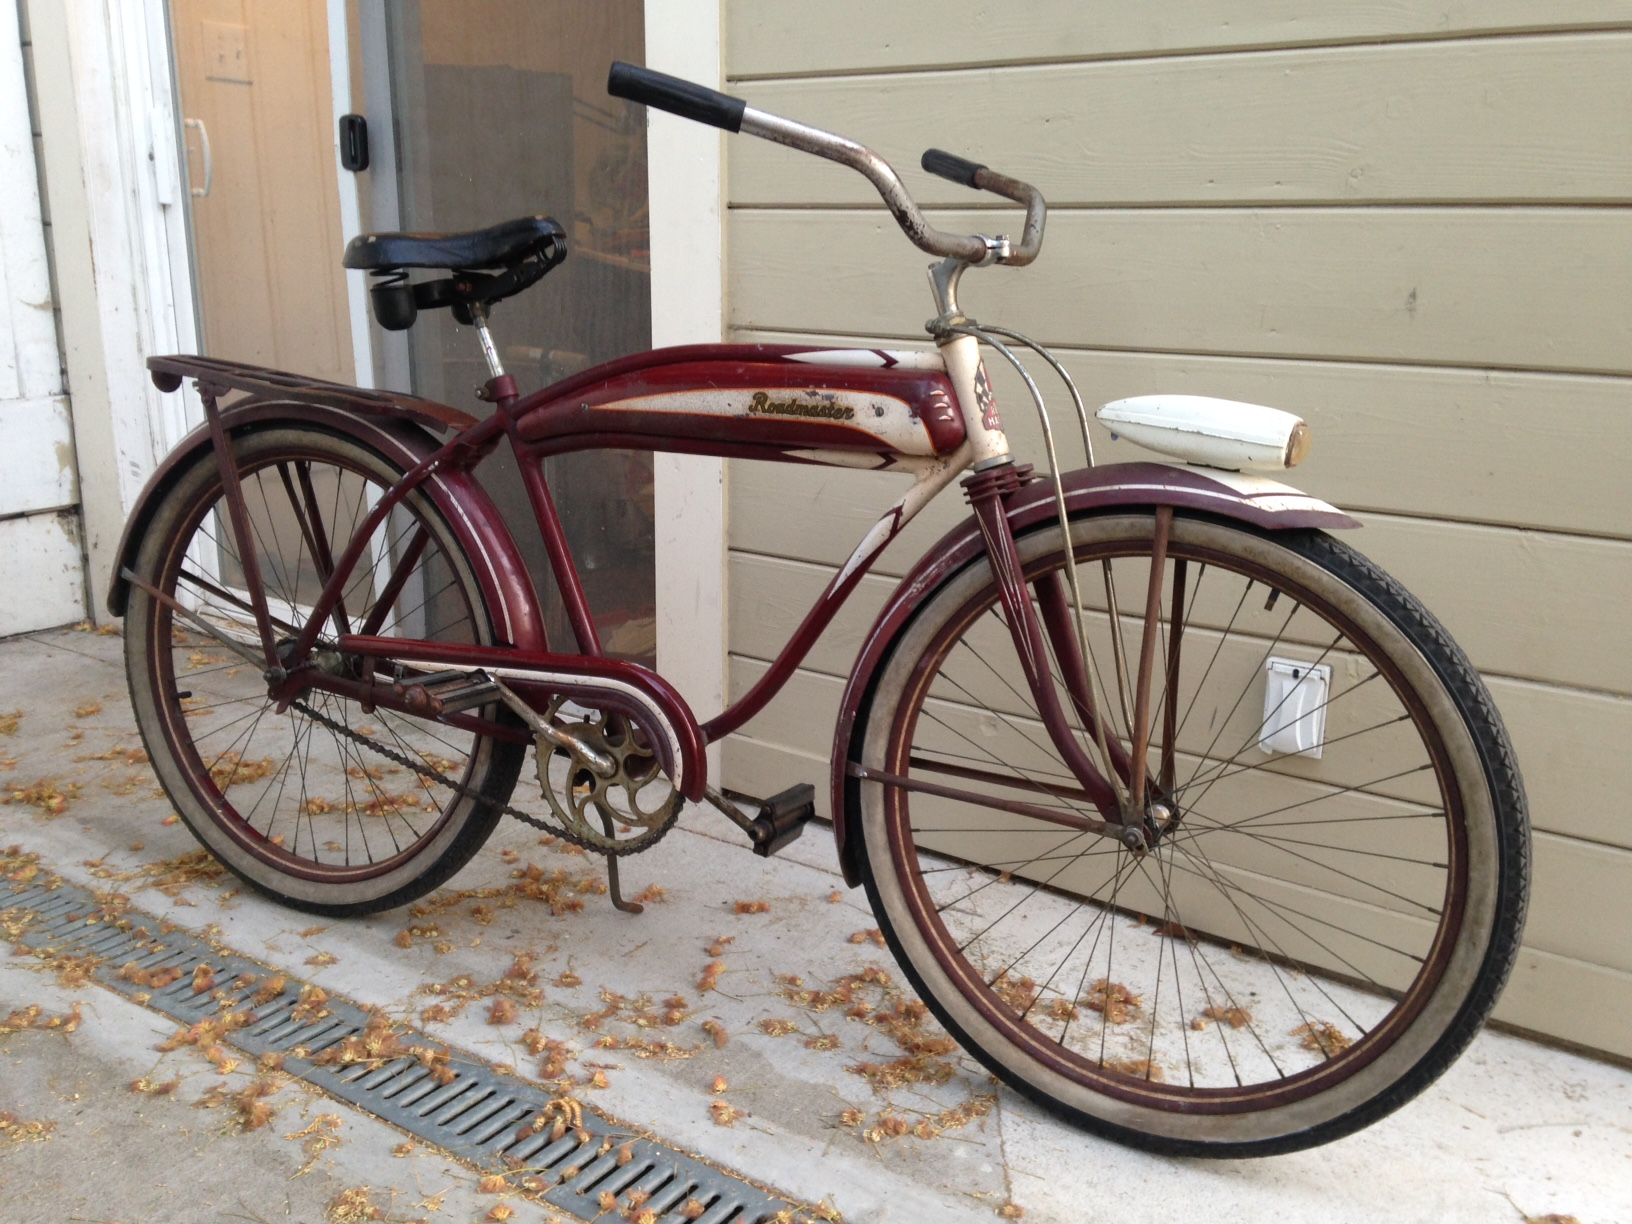 1941 Cwc Roadmaster Help Me Find The Correct Parts The Classic